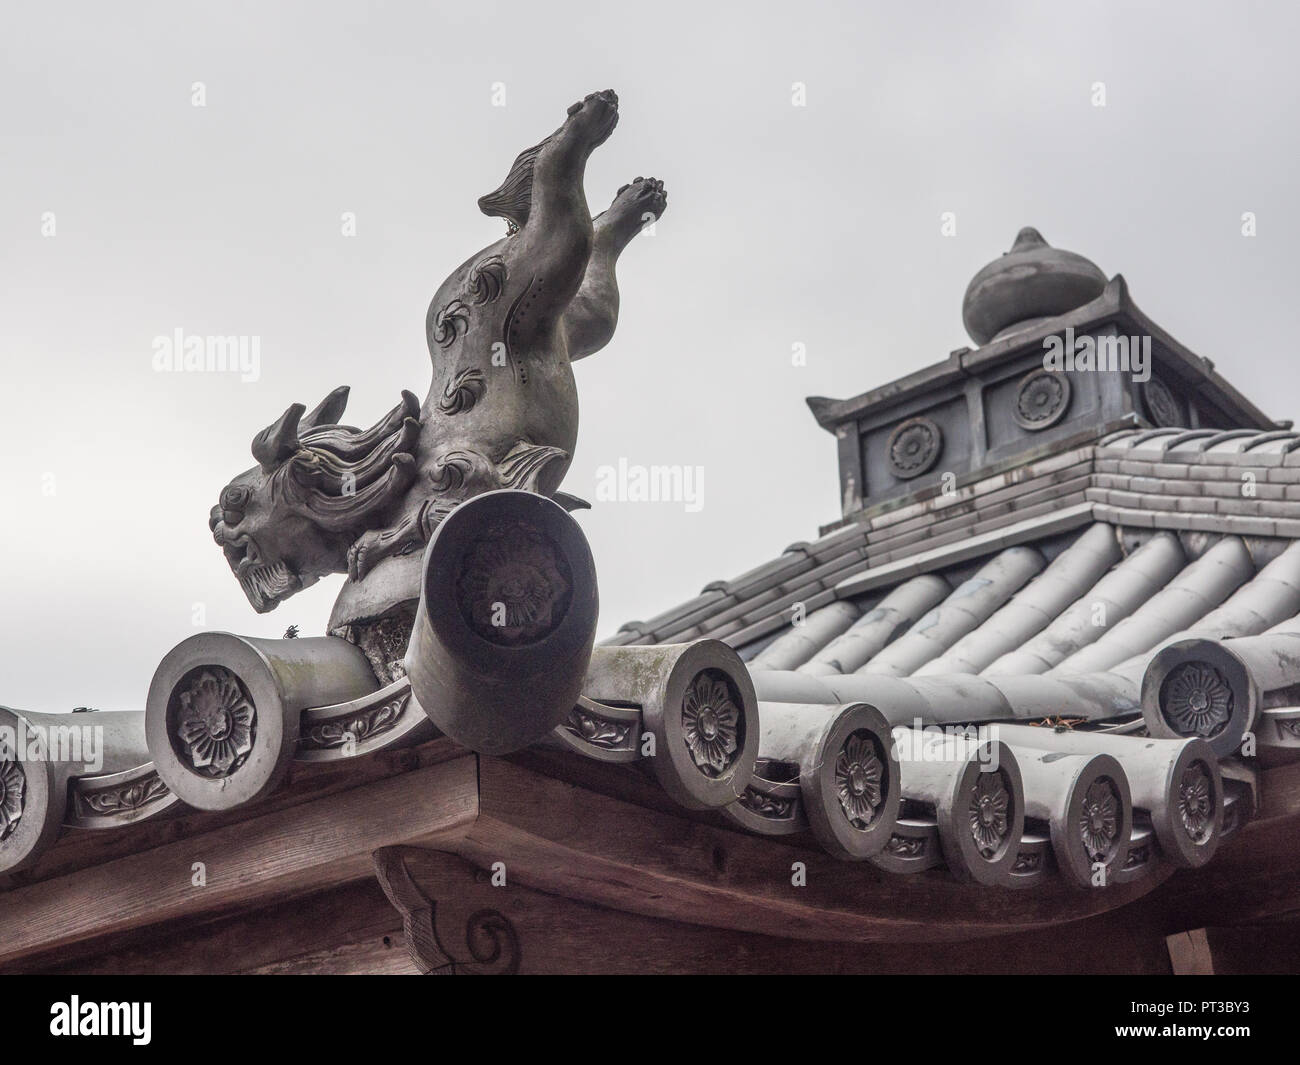 Roof figure, leaping lion dog, decorative tile, Kirihataji temple 10,  Shikoku 88 temple pilgrimage, Tokushima, Japan - Stock Image